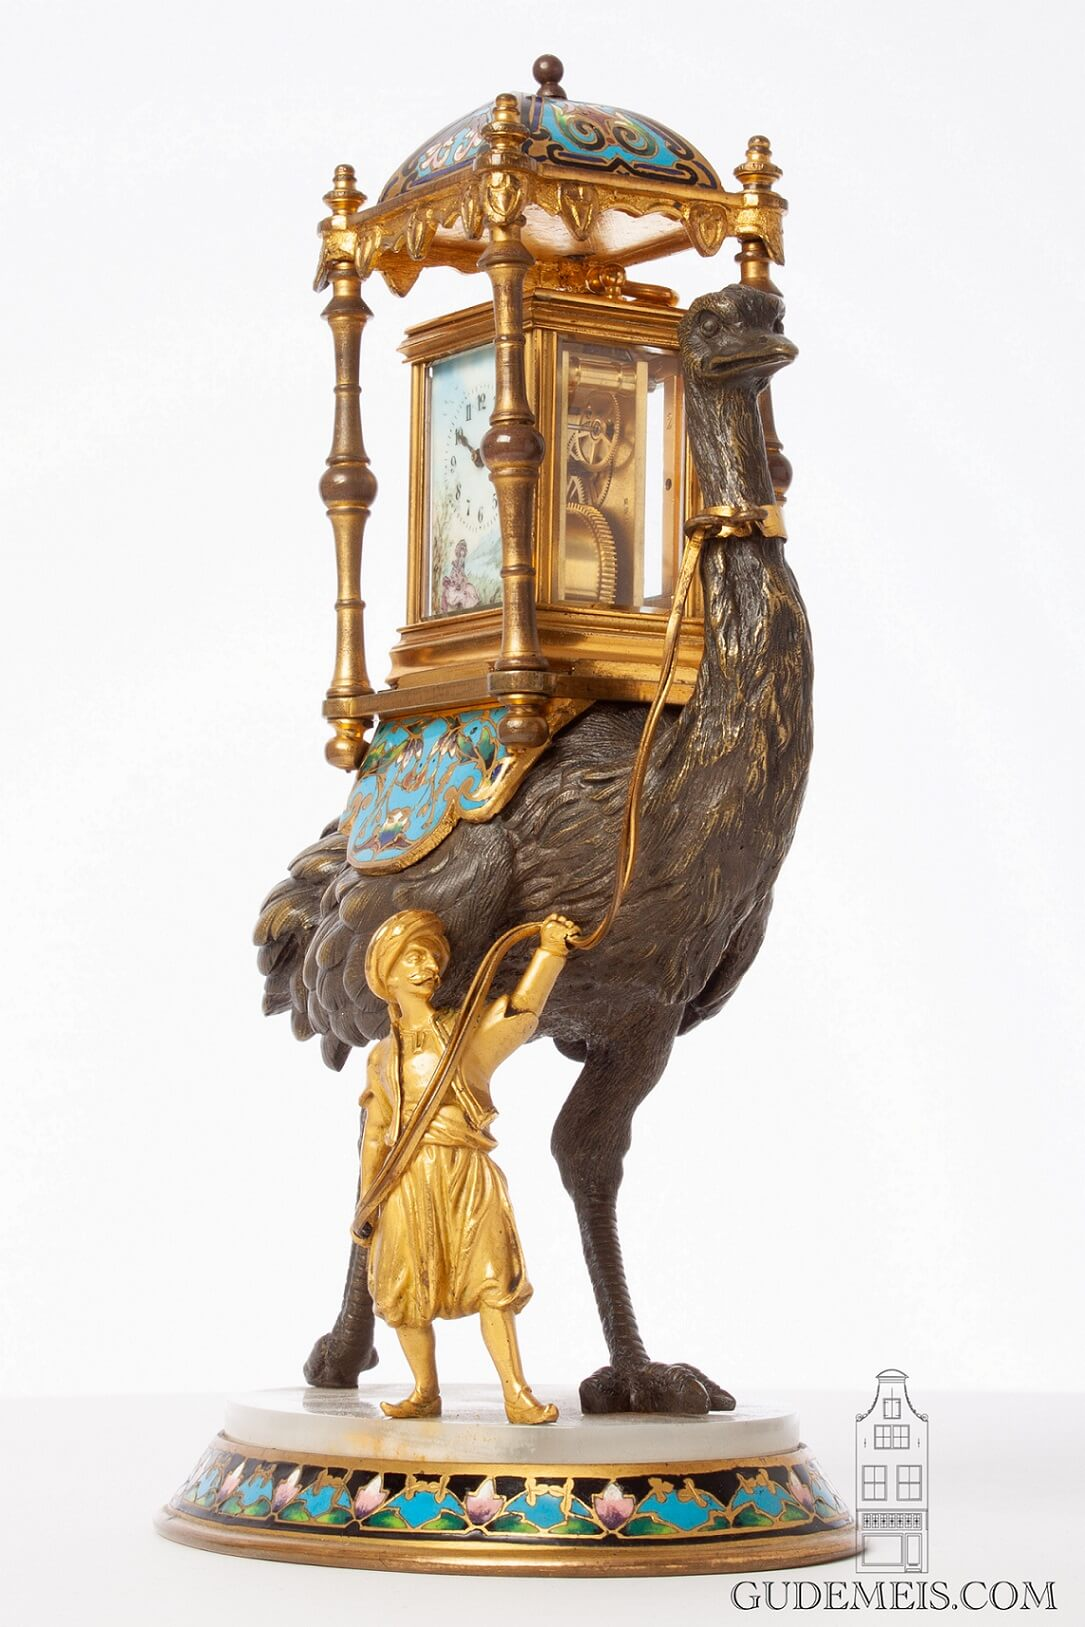 Swiss-French-gilt-porcelain-polychrome-gilt-brass-anglaise-miniature-carriage-clock-ostrich-bronze-presentation-stand-